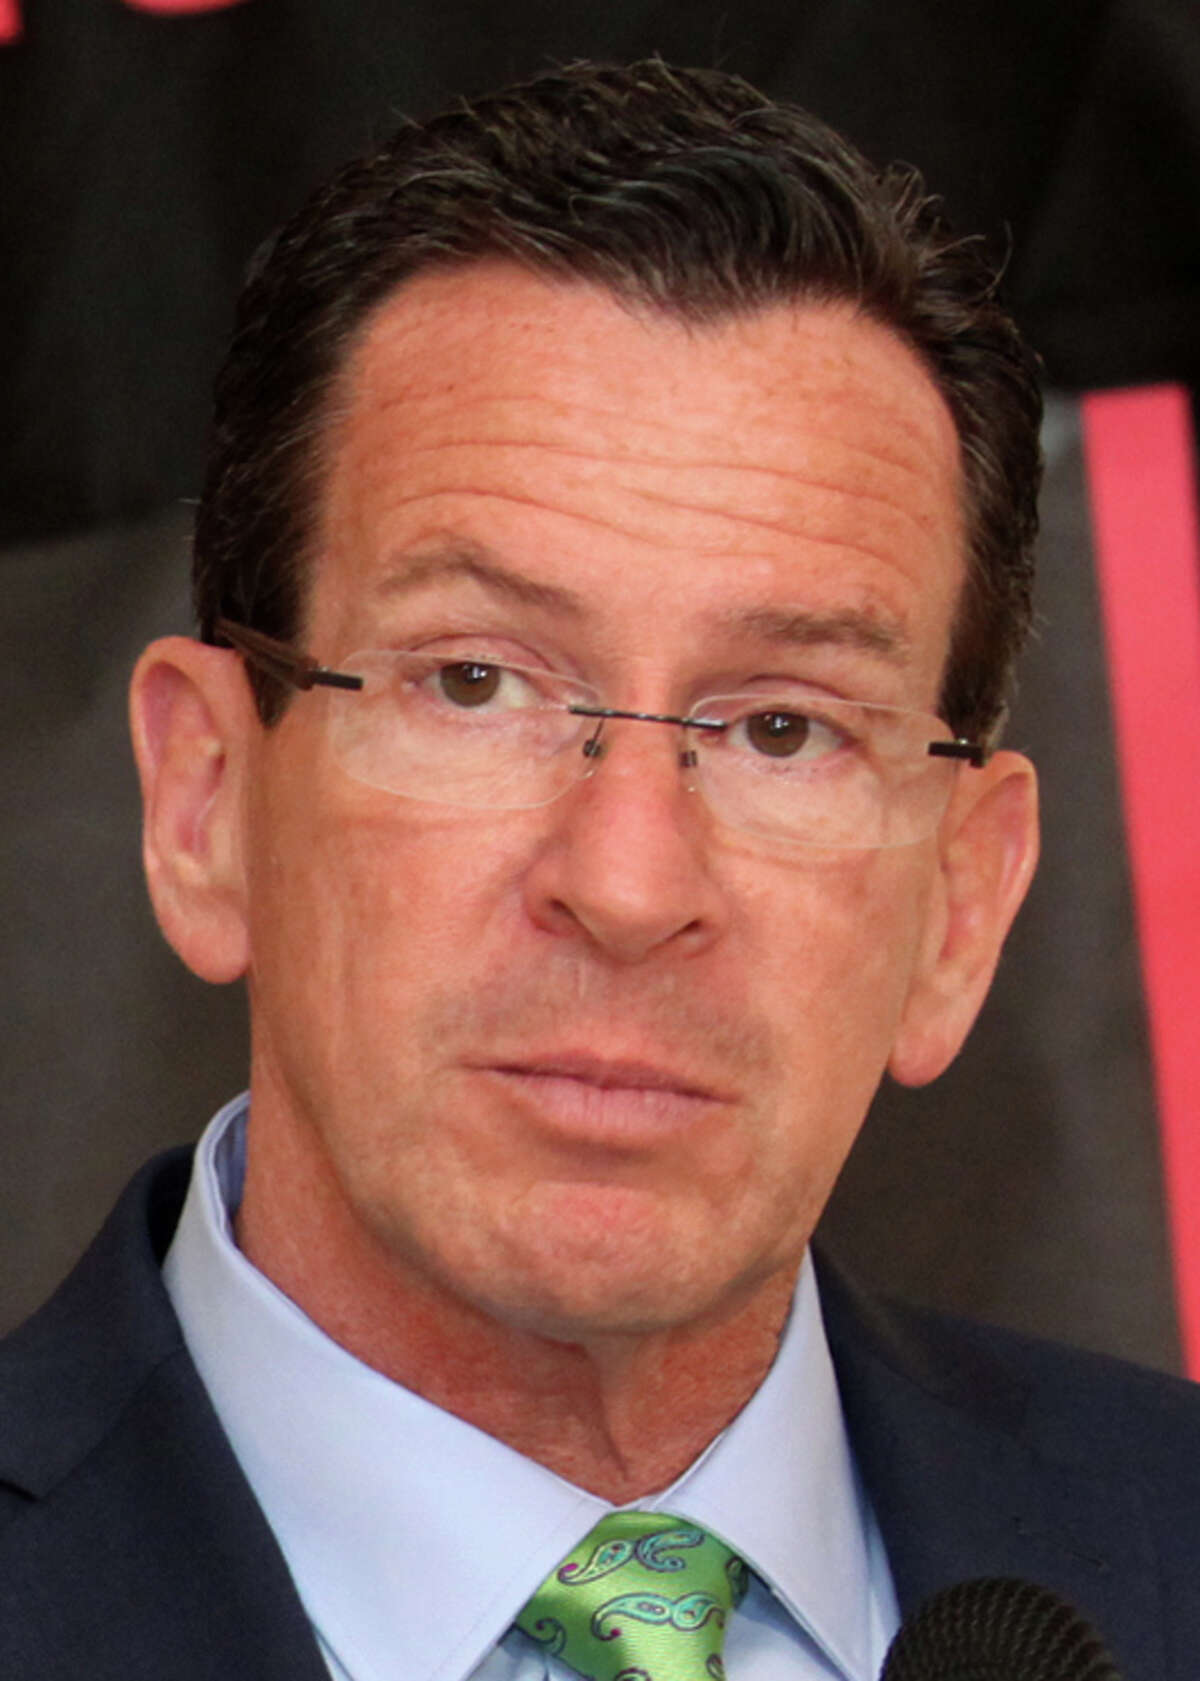 Governor Dannel P. Malloy, May 5, 2014.